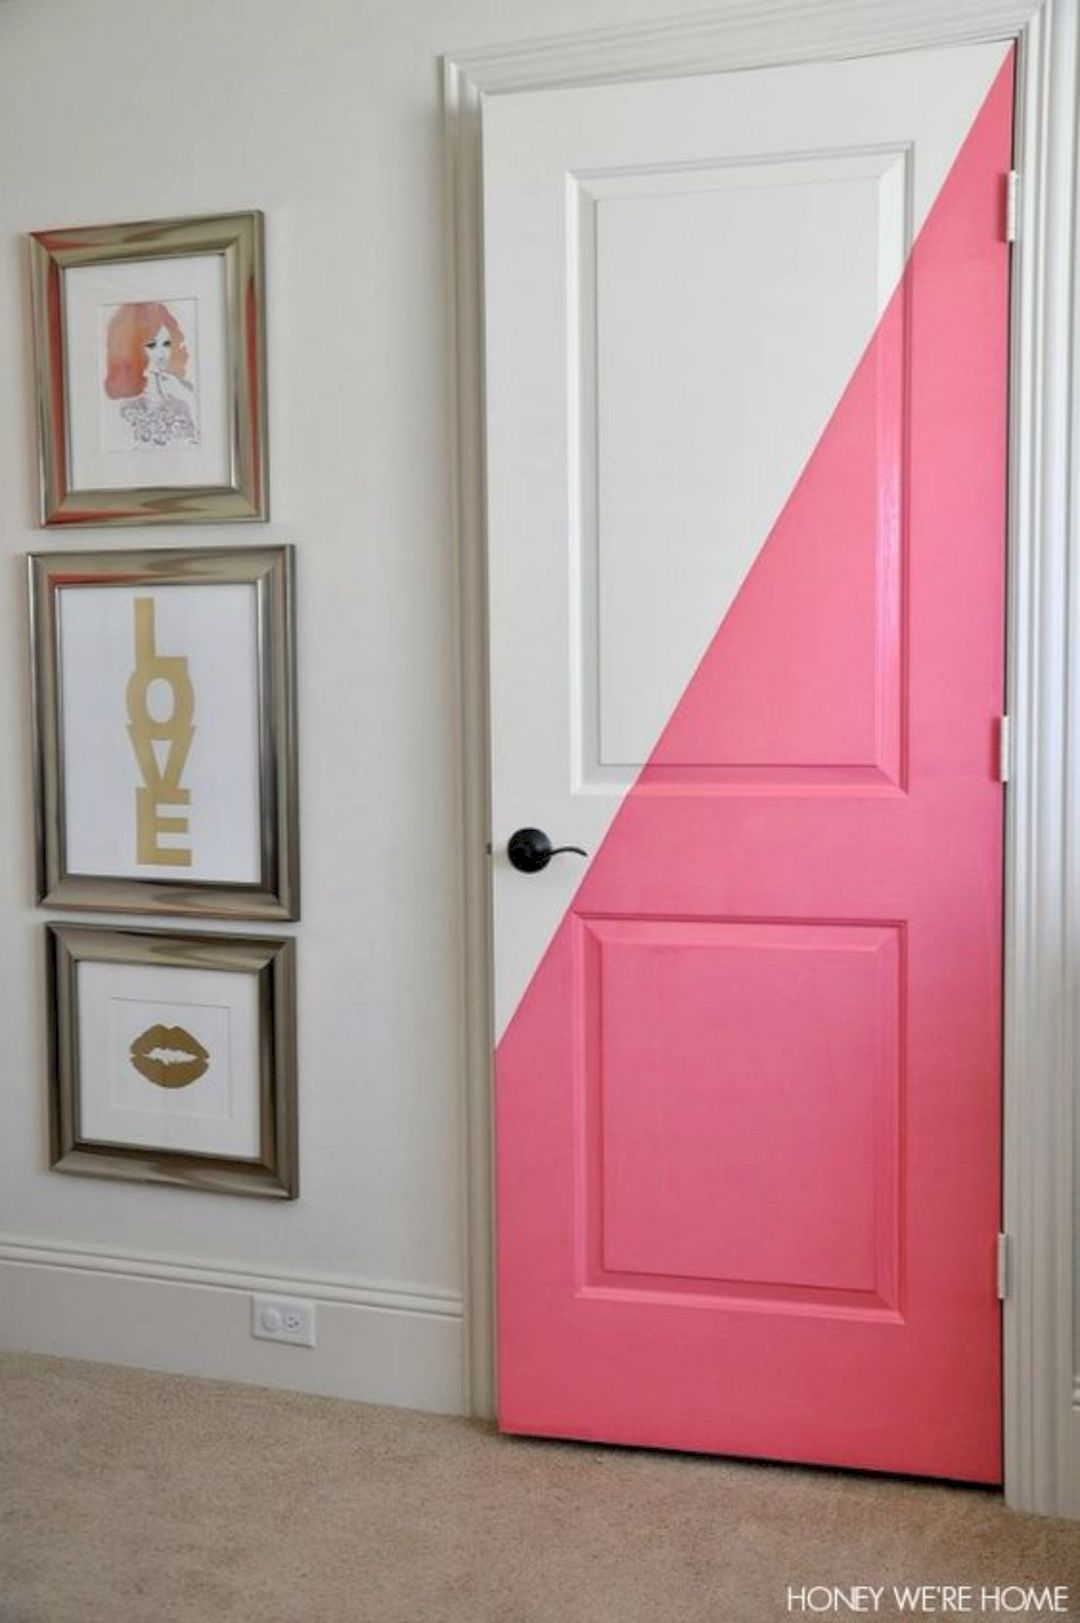 6 Elegant White Furniture Ideas To Upgrade The Bedroom With Modern Touch Bedroom Door Decorations Girl Room Painted Closet